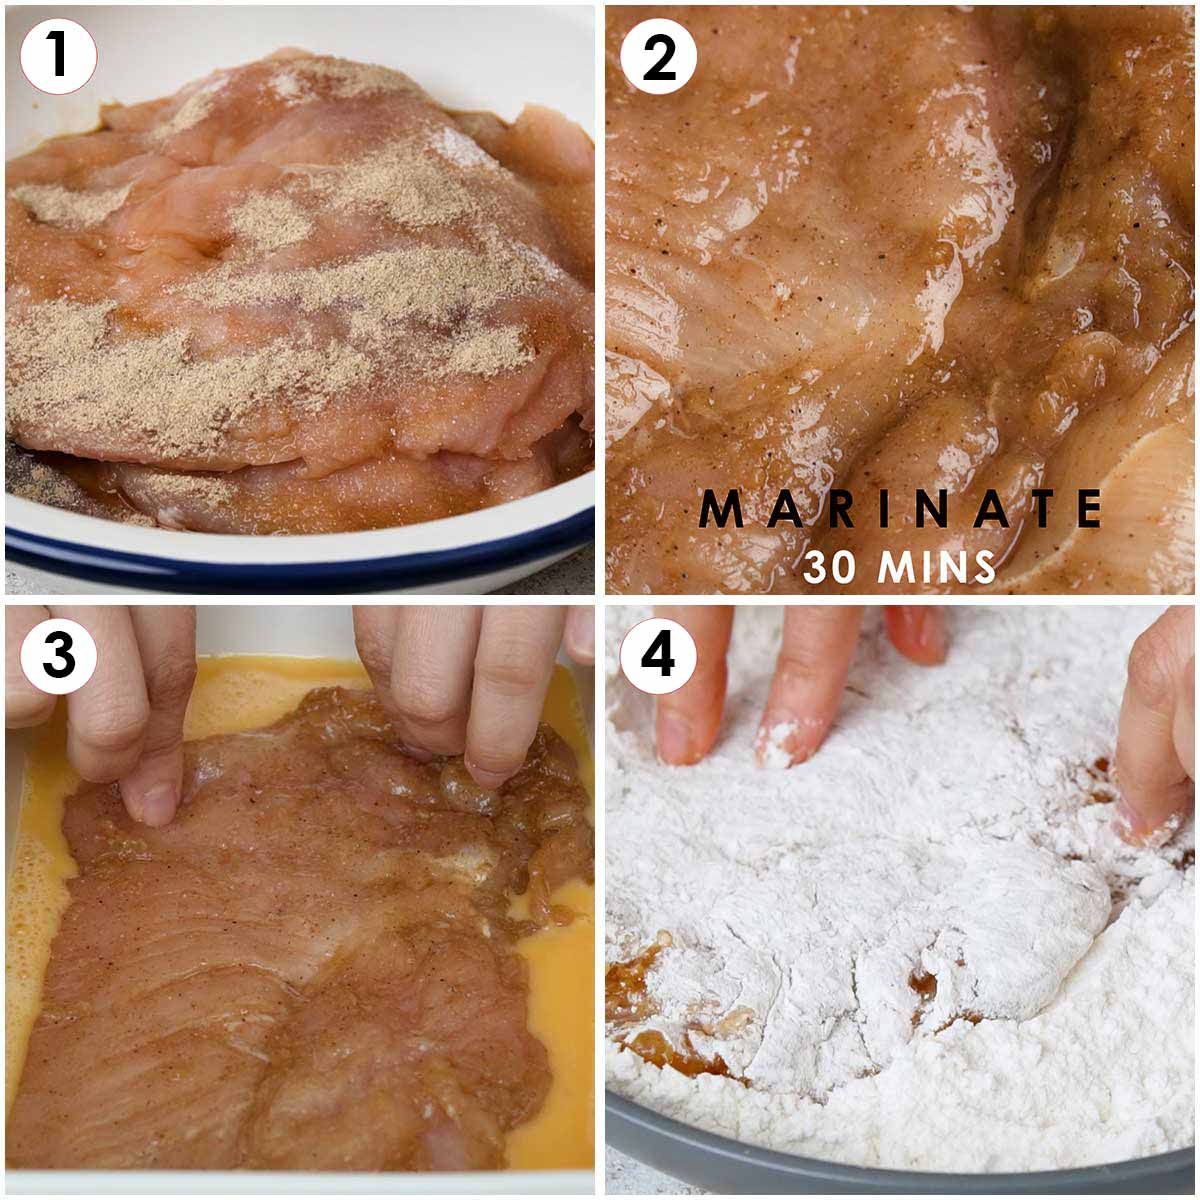 4 image collage showing how to marinate and coat the chicken fillets